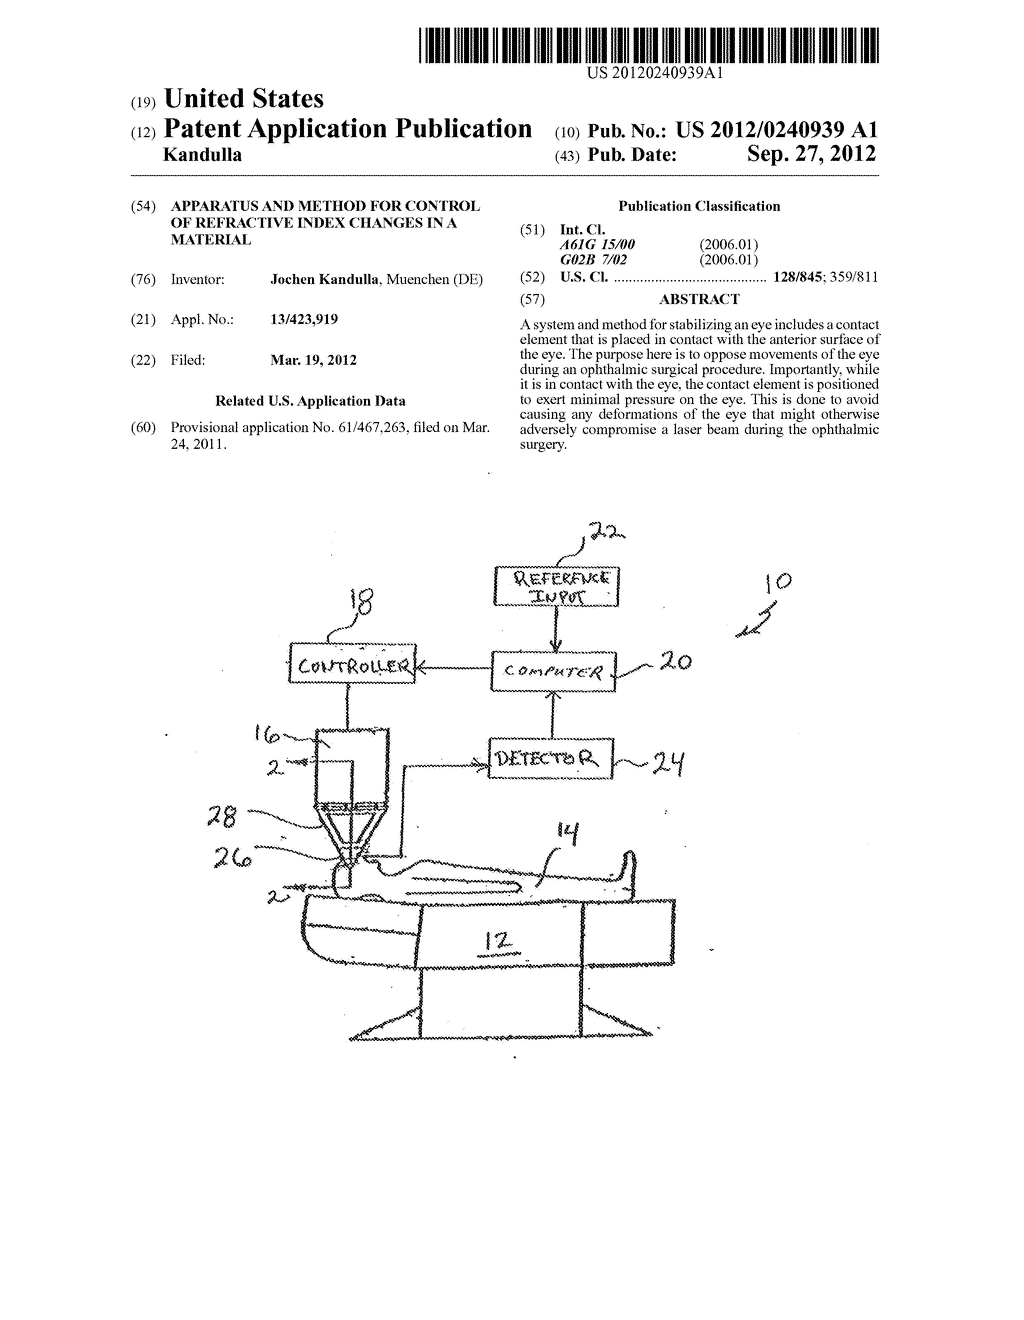 Apparatus and Method for Control of Refractive Index Changes in a Material - diagram, schematic, and image 01